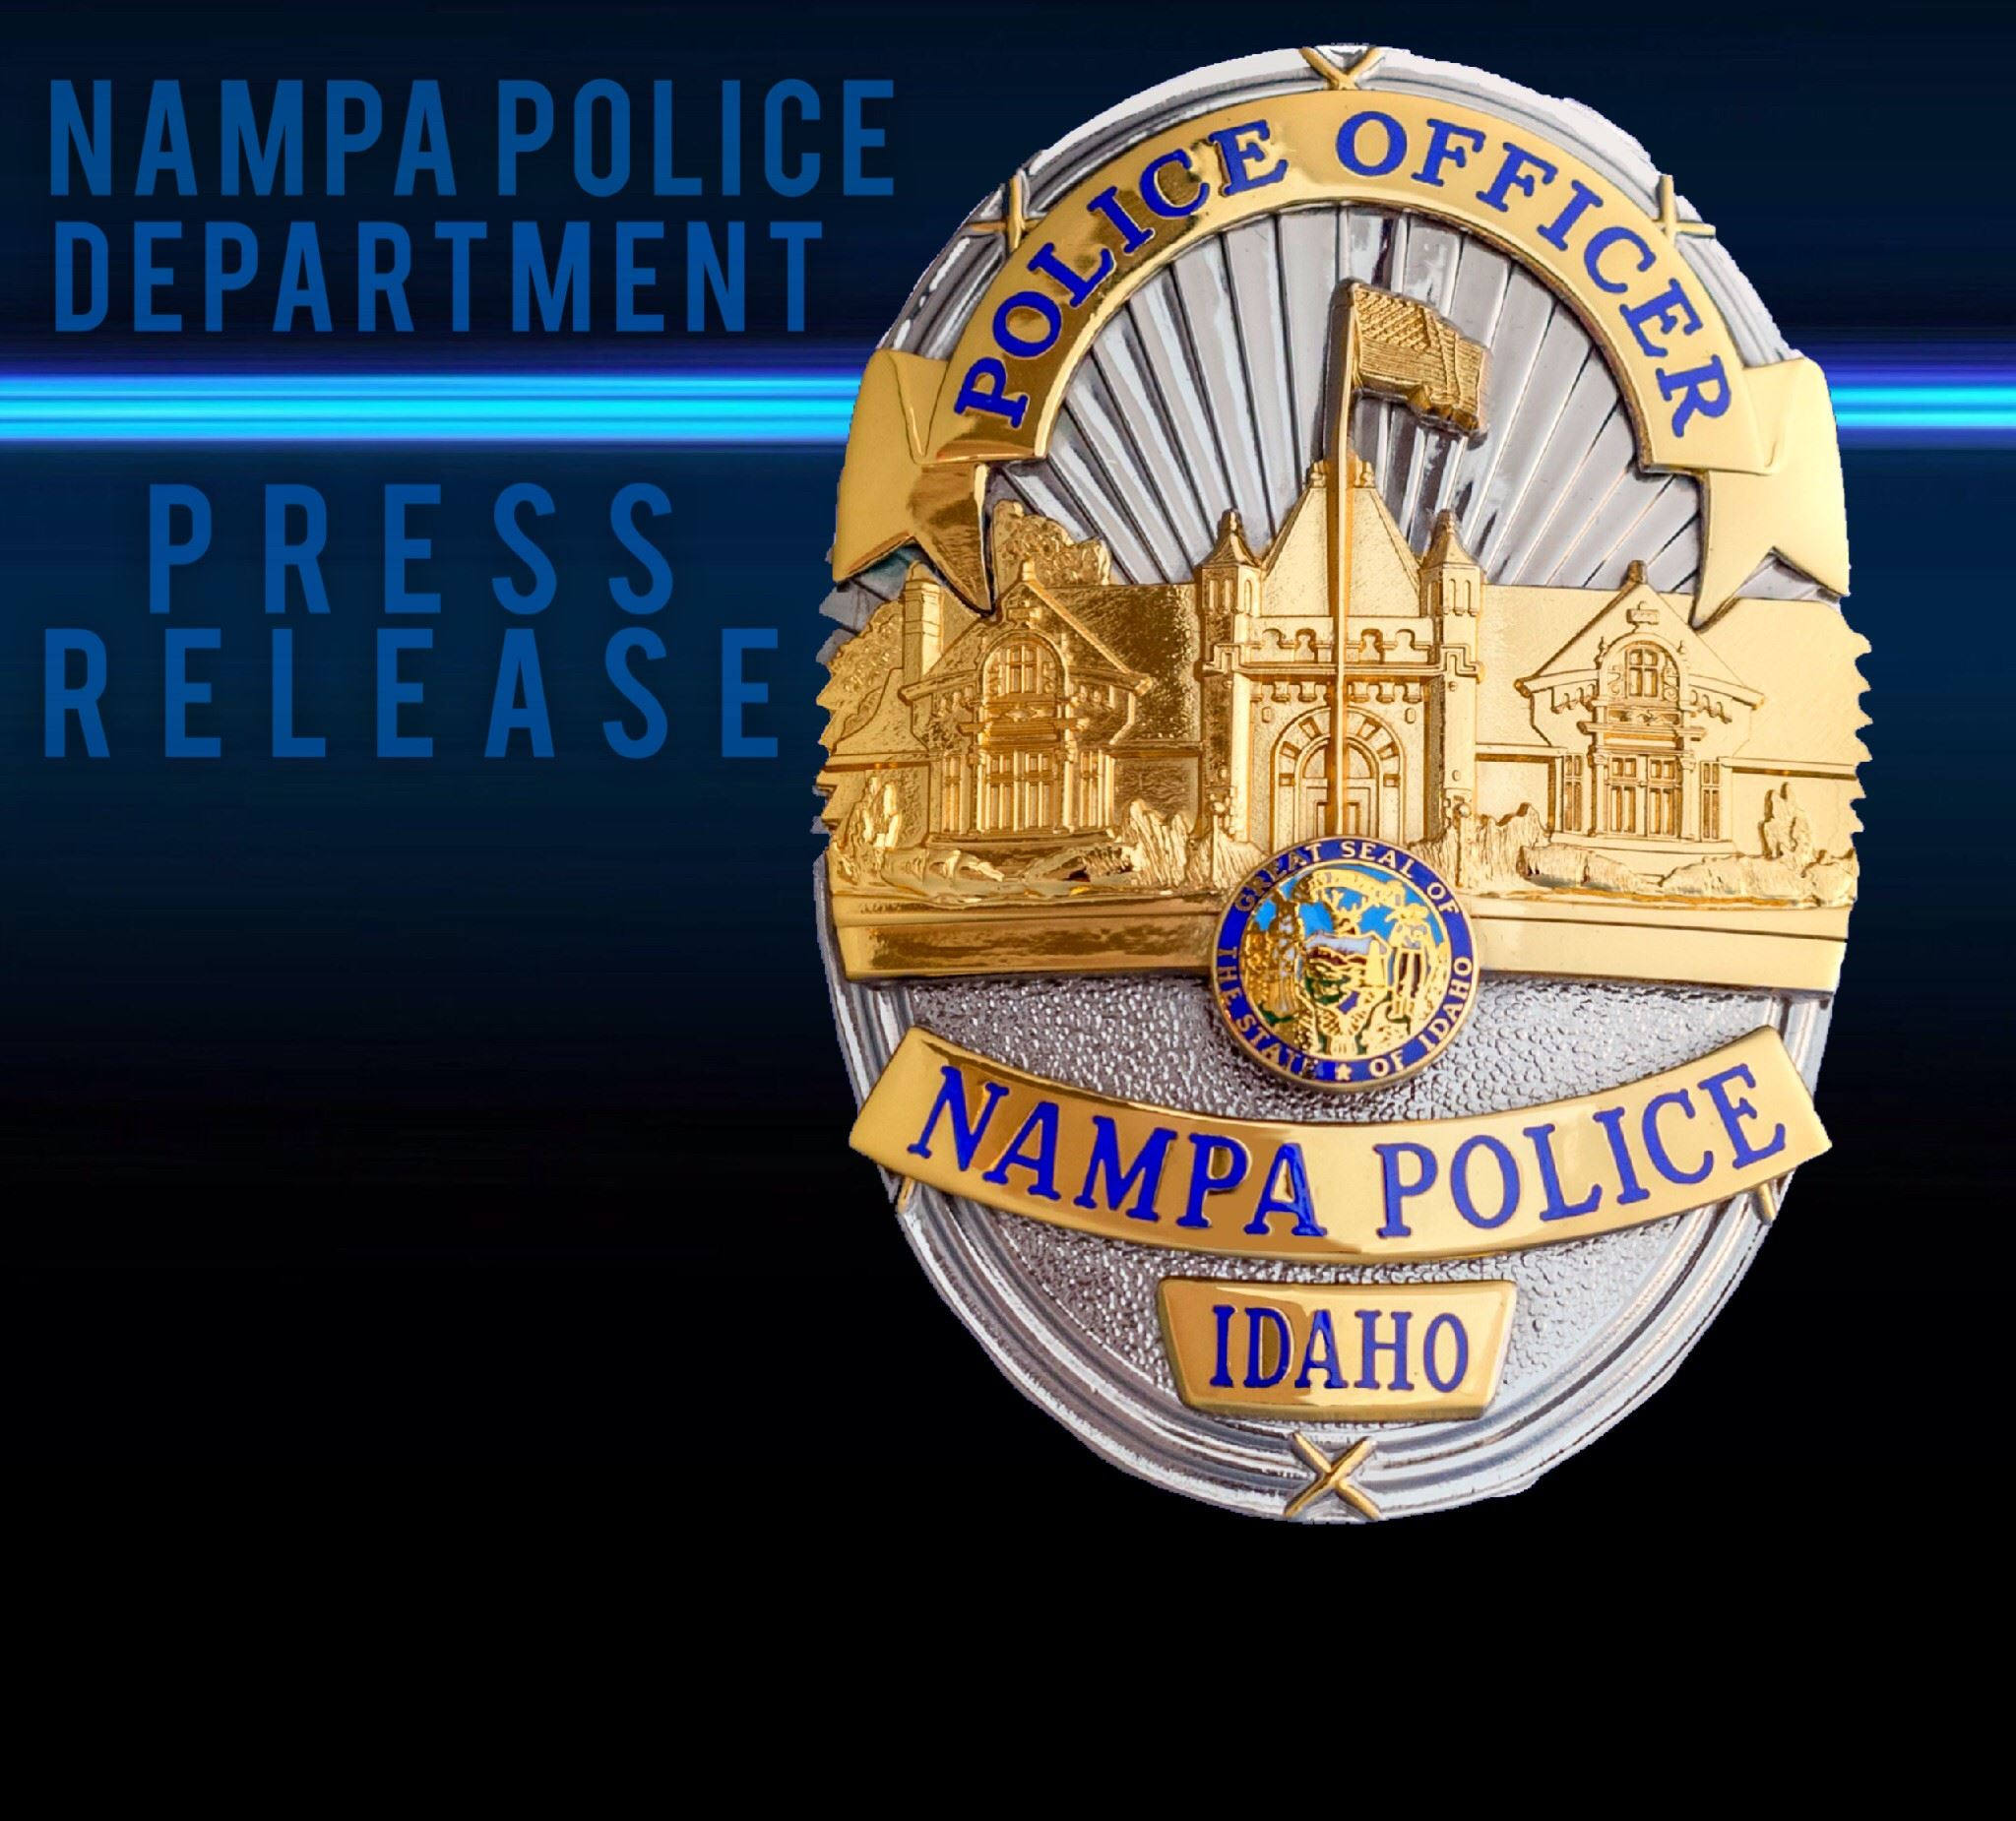 Nampa Police press release logo with Nampa Police badge